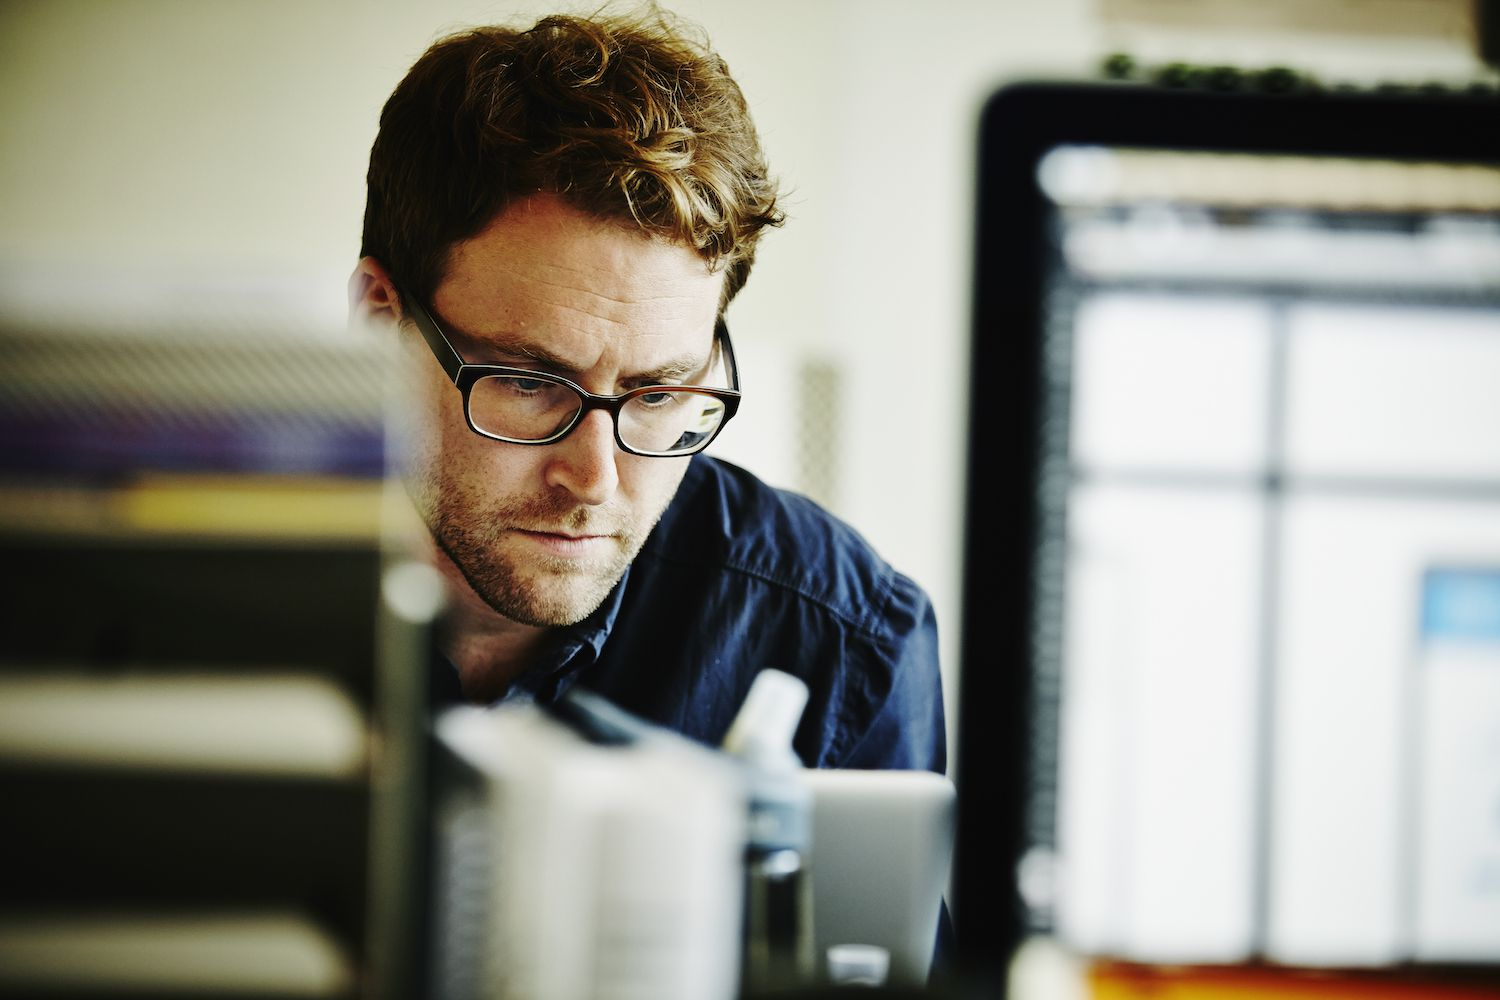 Man wearing glasses working intently on an art catalog.